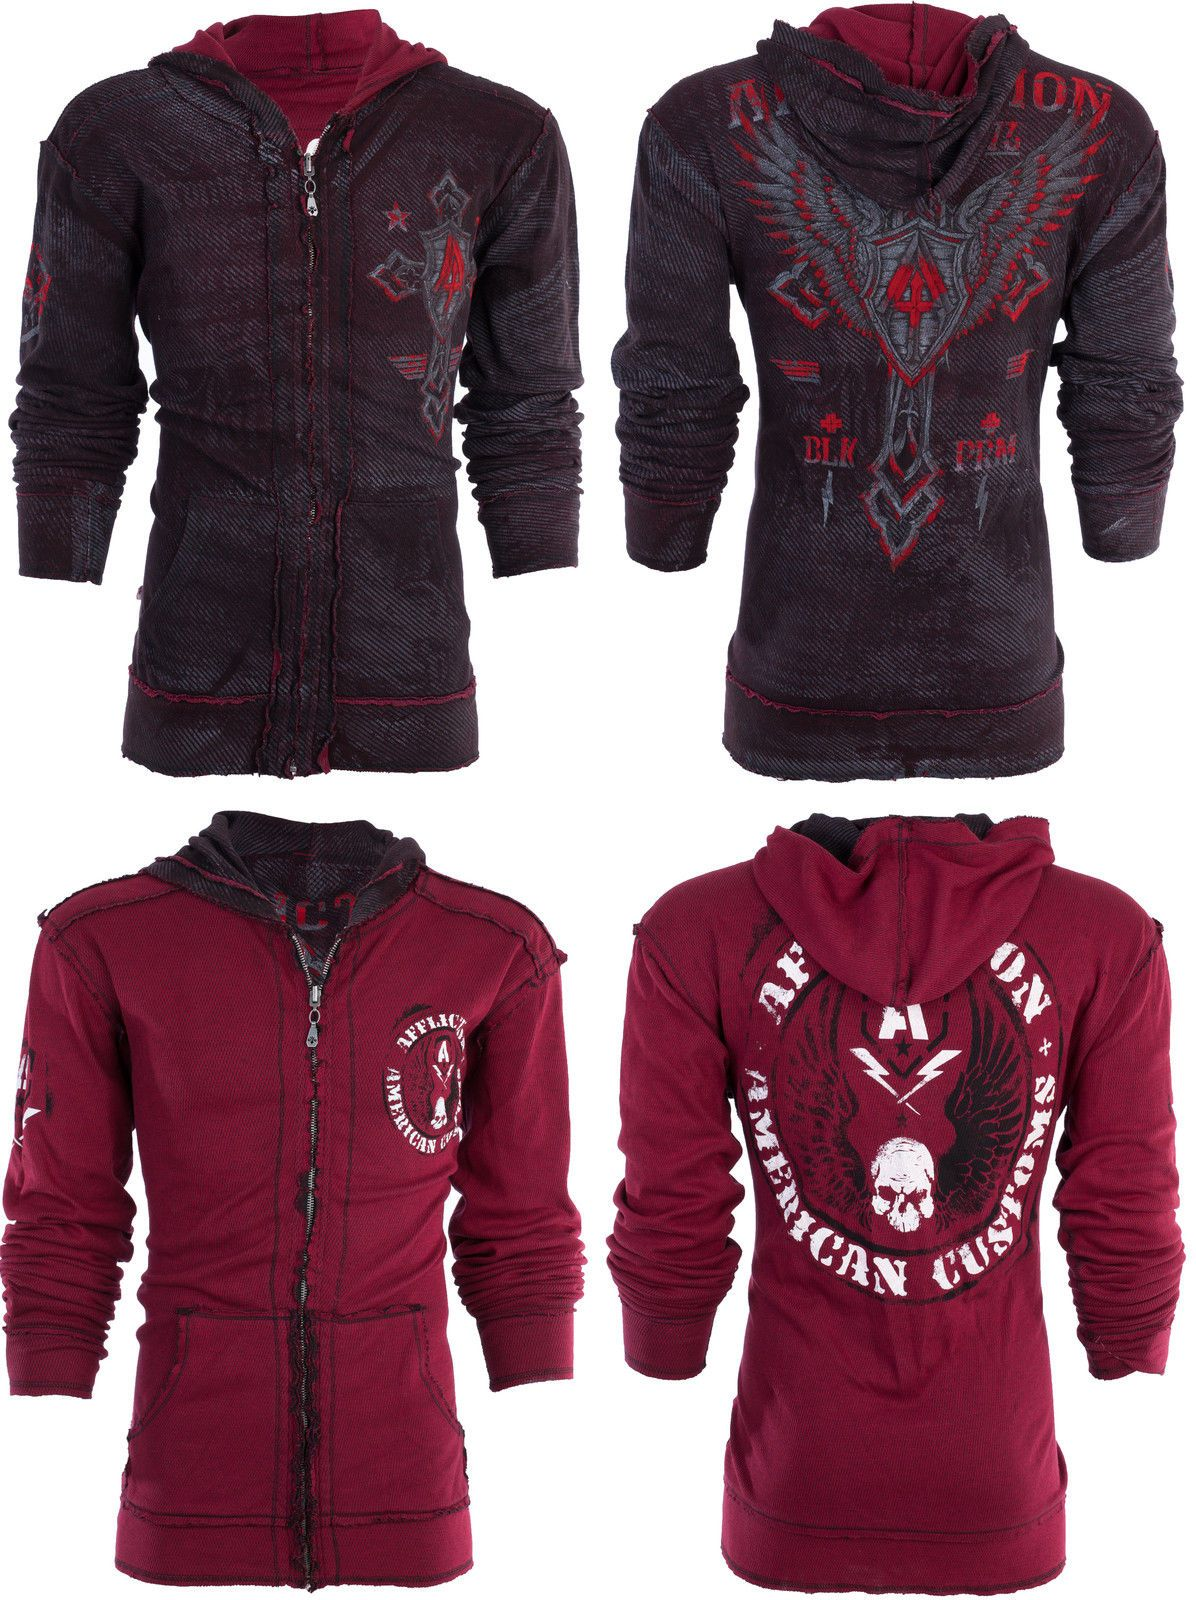 49.99 AFFLICTION Mens Hoodie Sweat Shirt ZIP UP Jacket